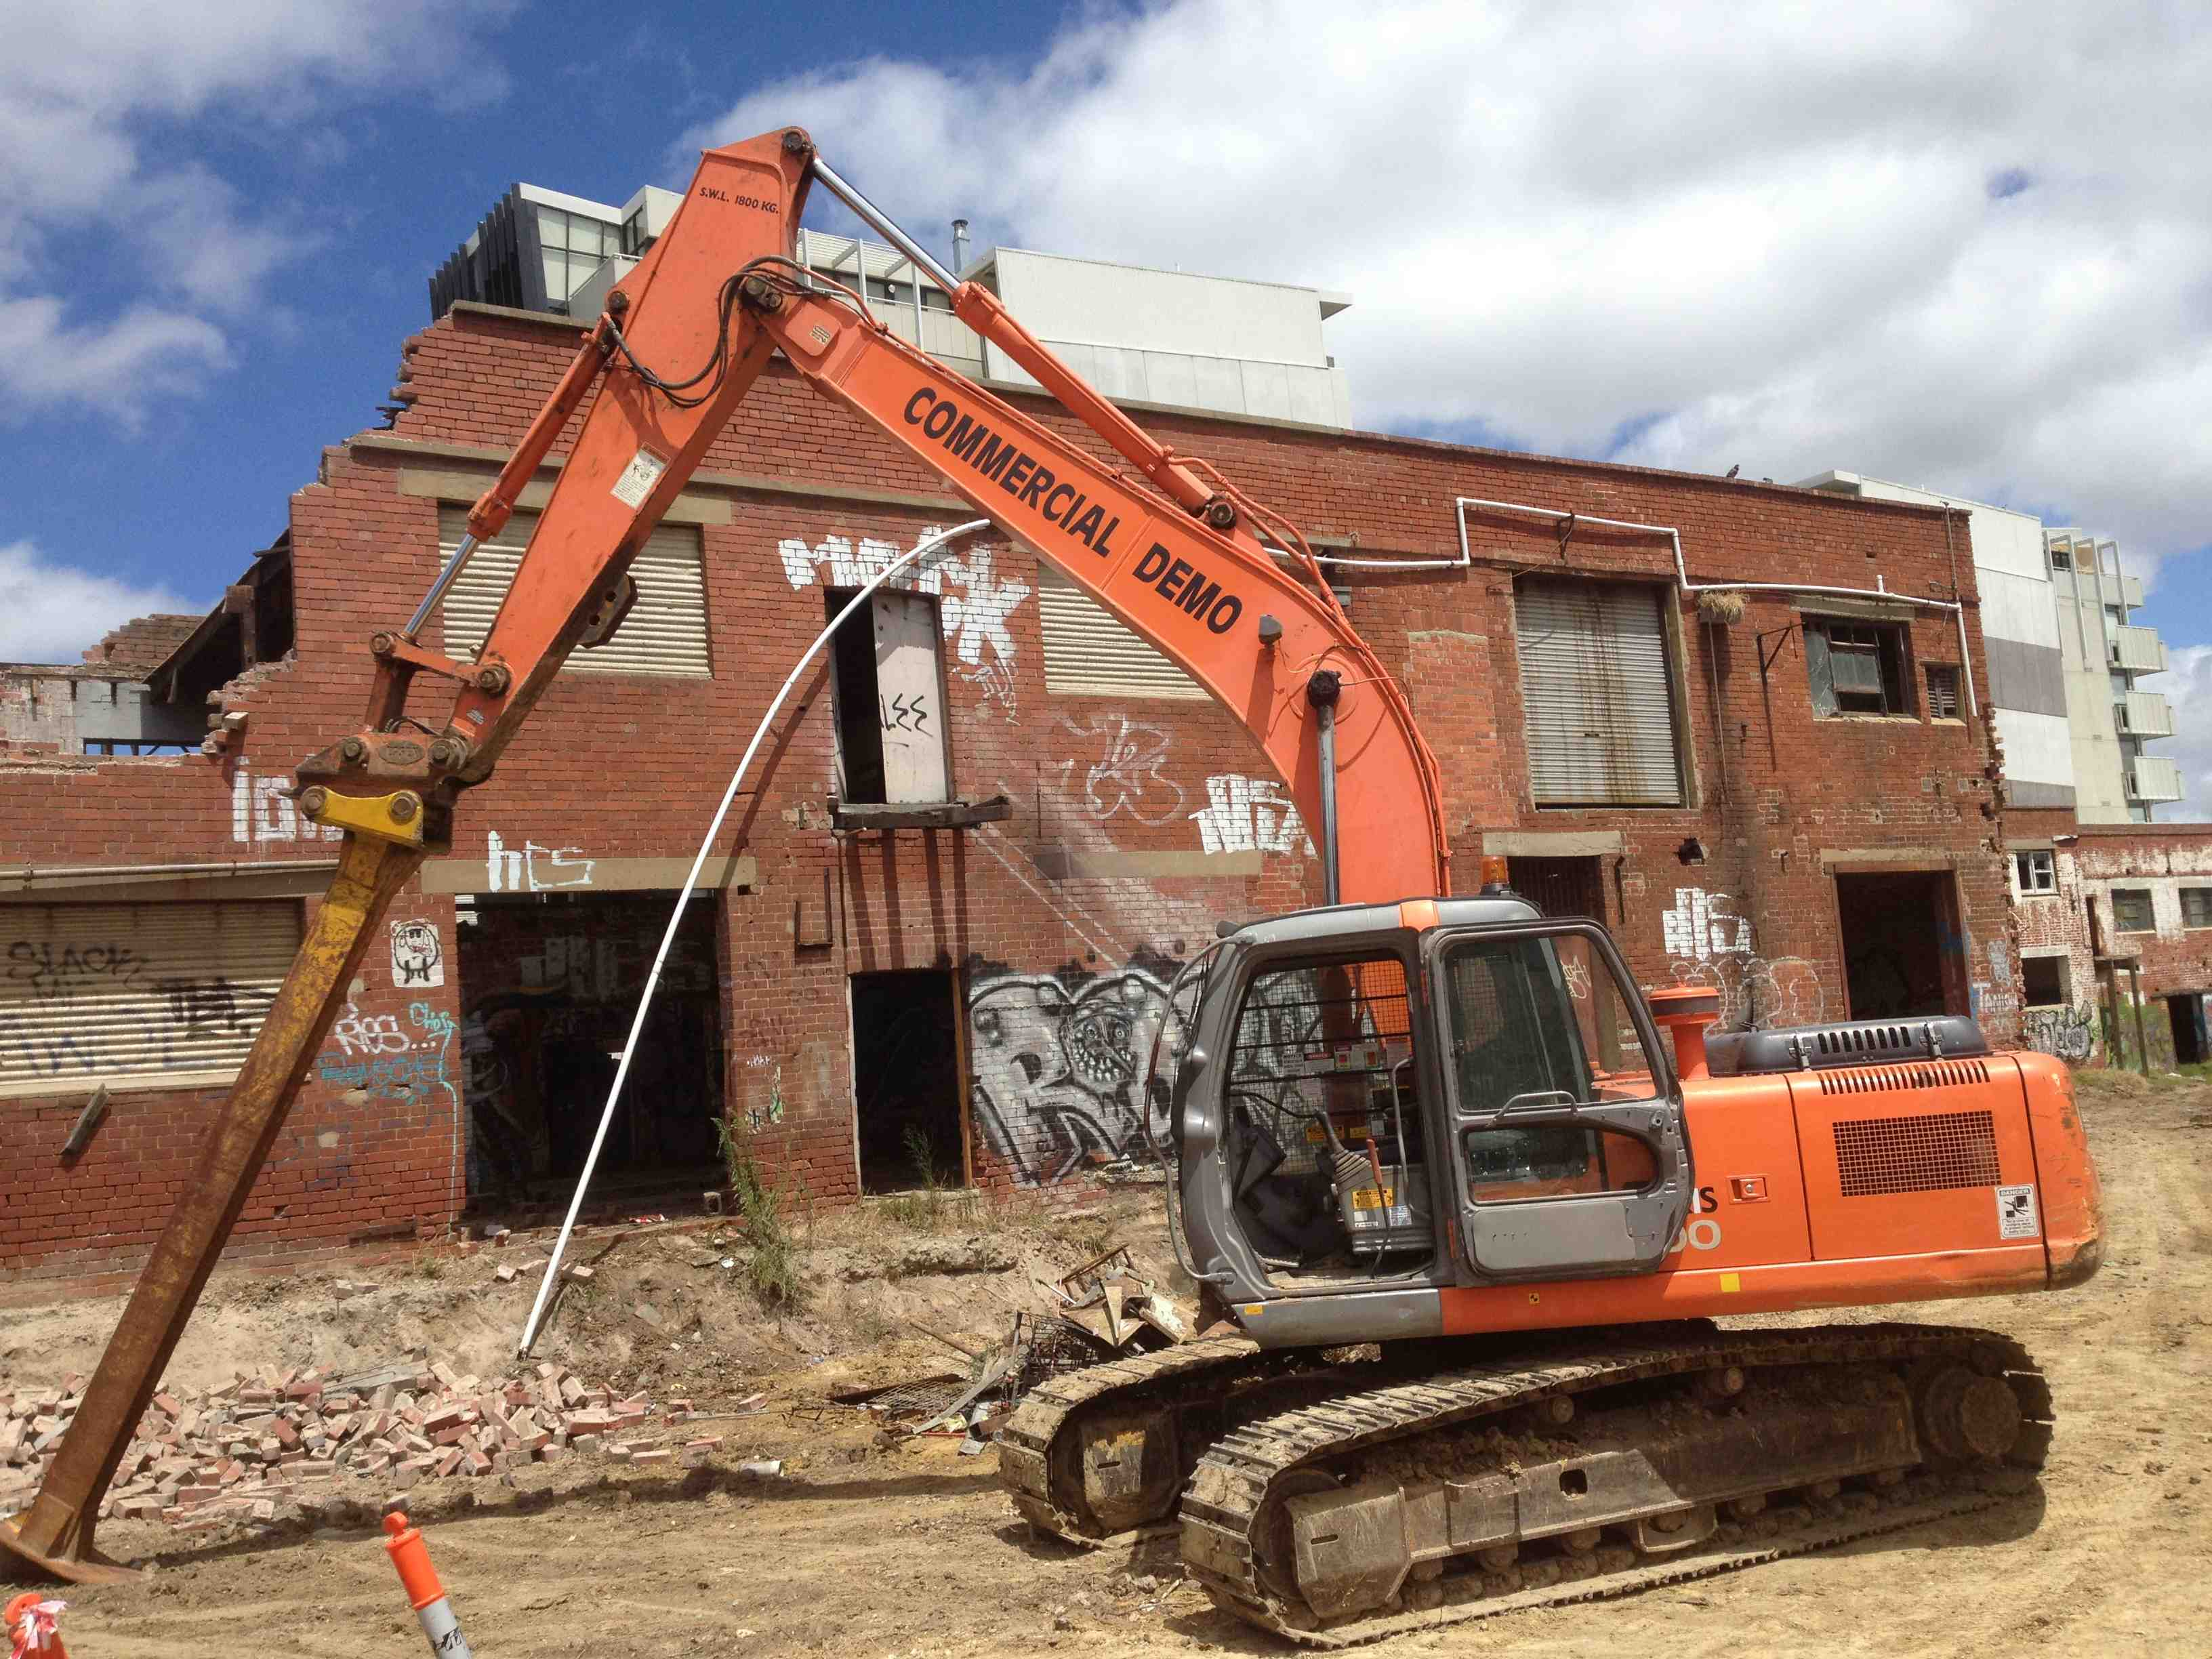 commercial_demolition_plentyrd_preston.jpg